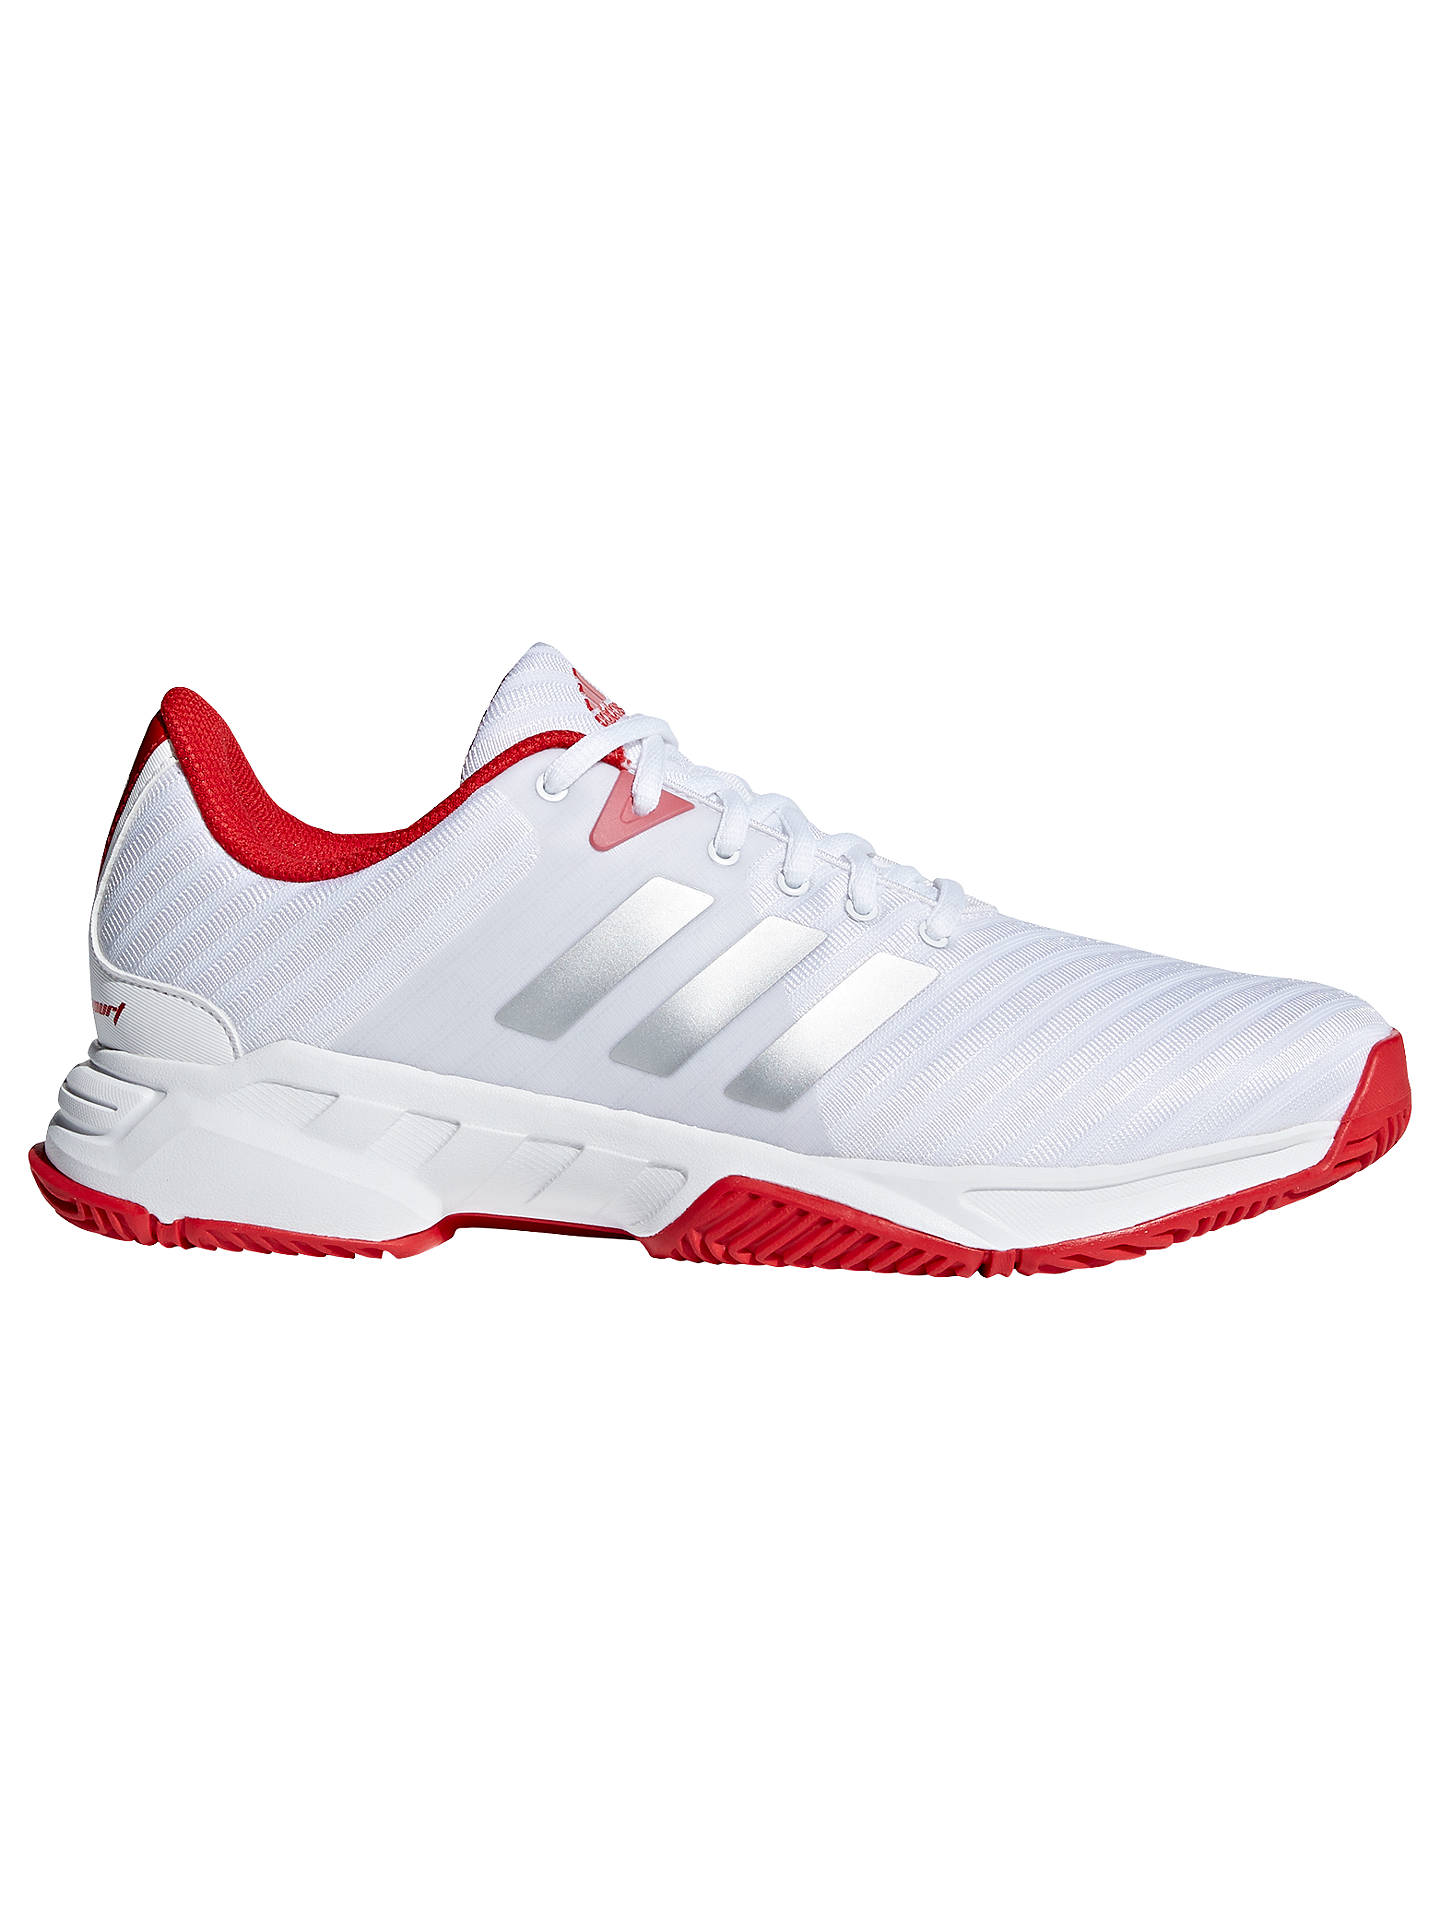 adidas Barricade 3.0 Men's Tennis Court Shoes, WhiteRed at